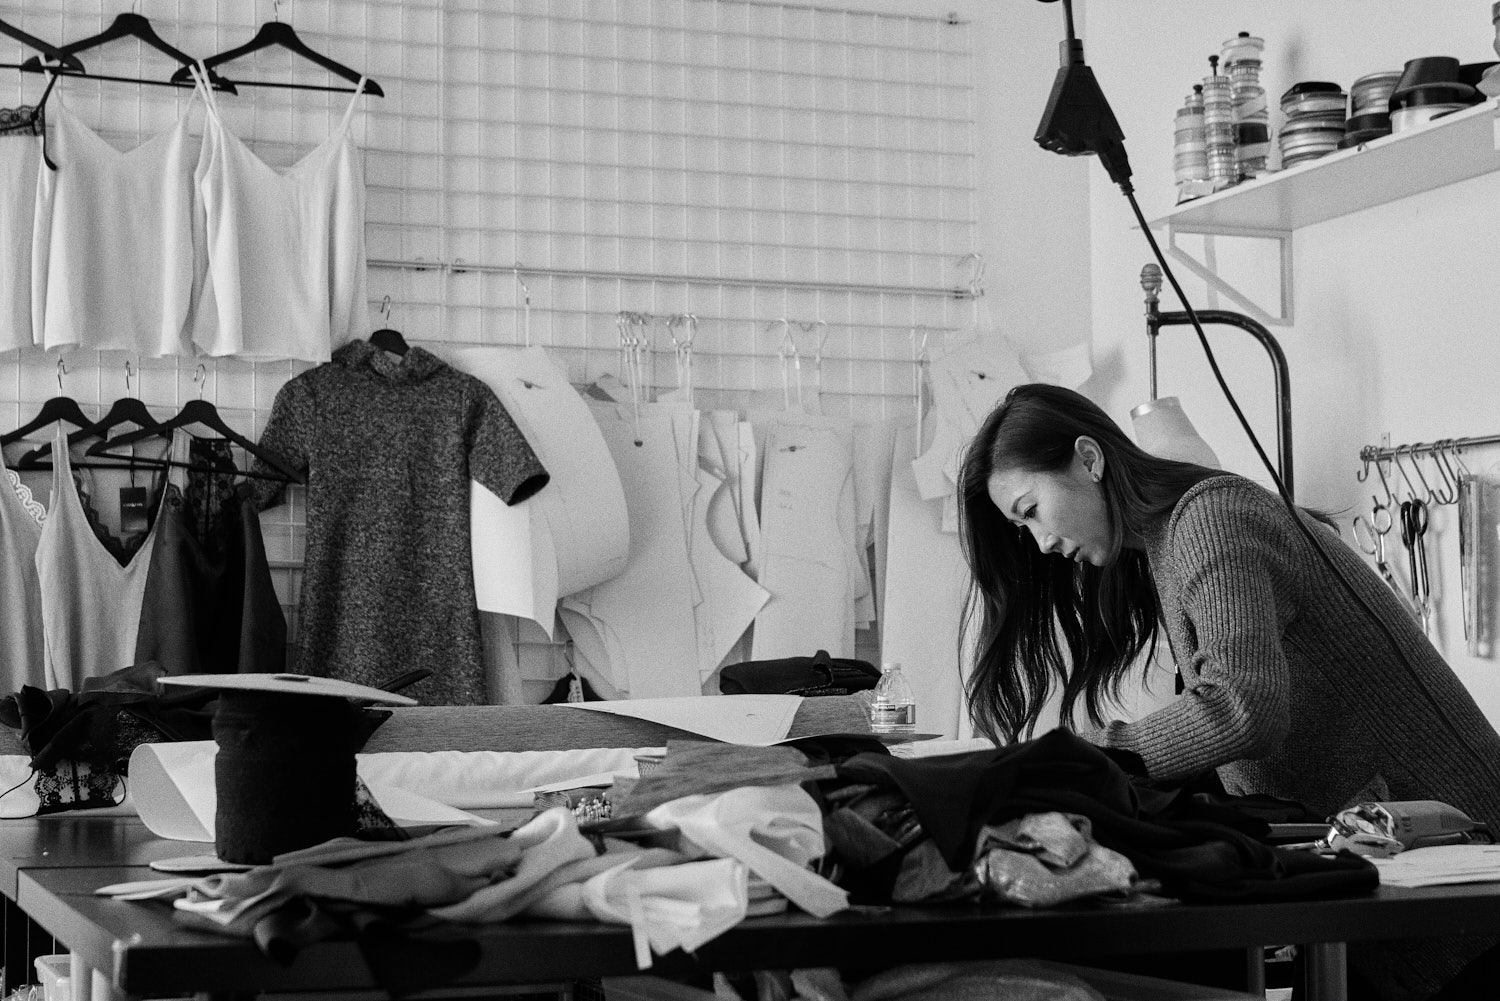 Kelly at work in her production studio, December 2018.